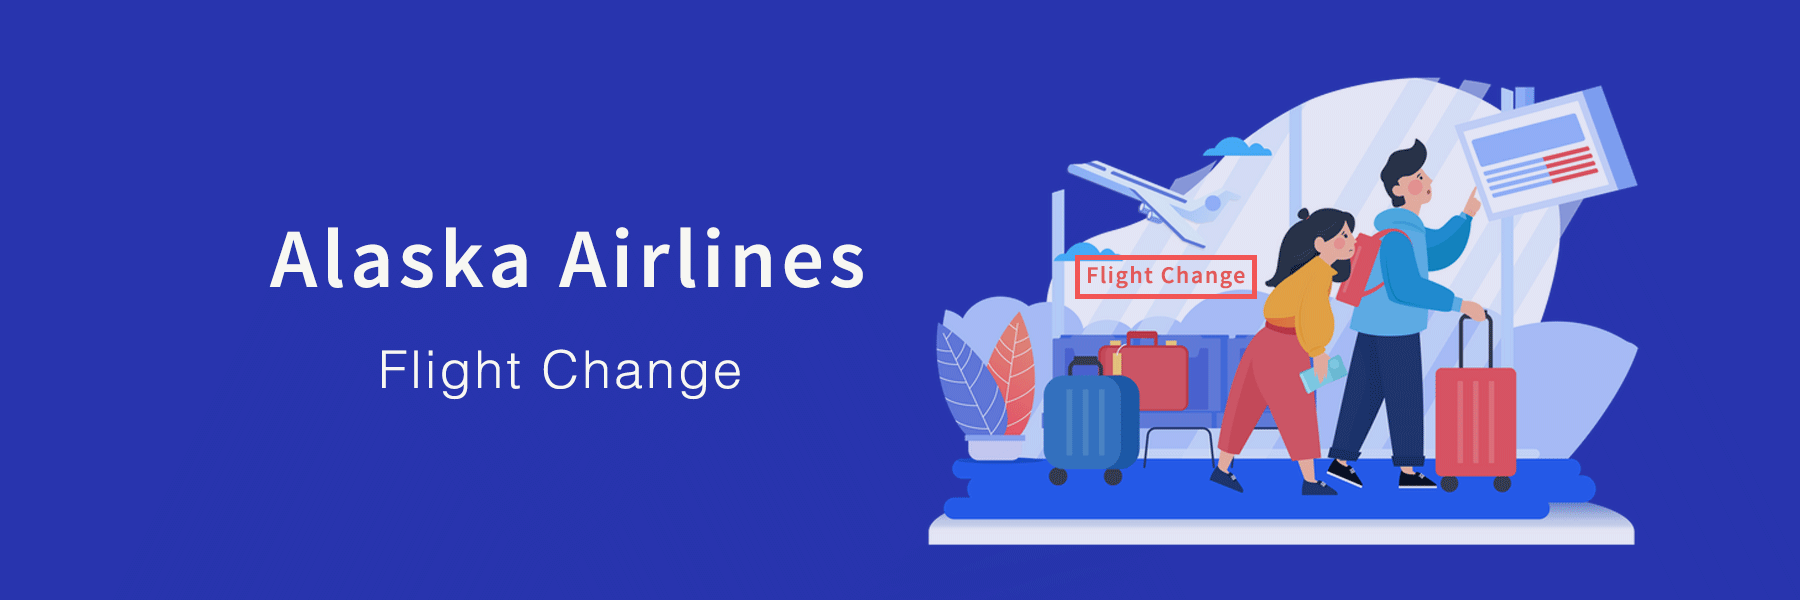 How to Change flight in Alaska Airlines?